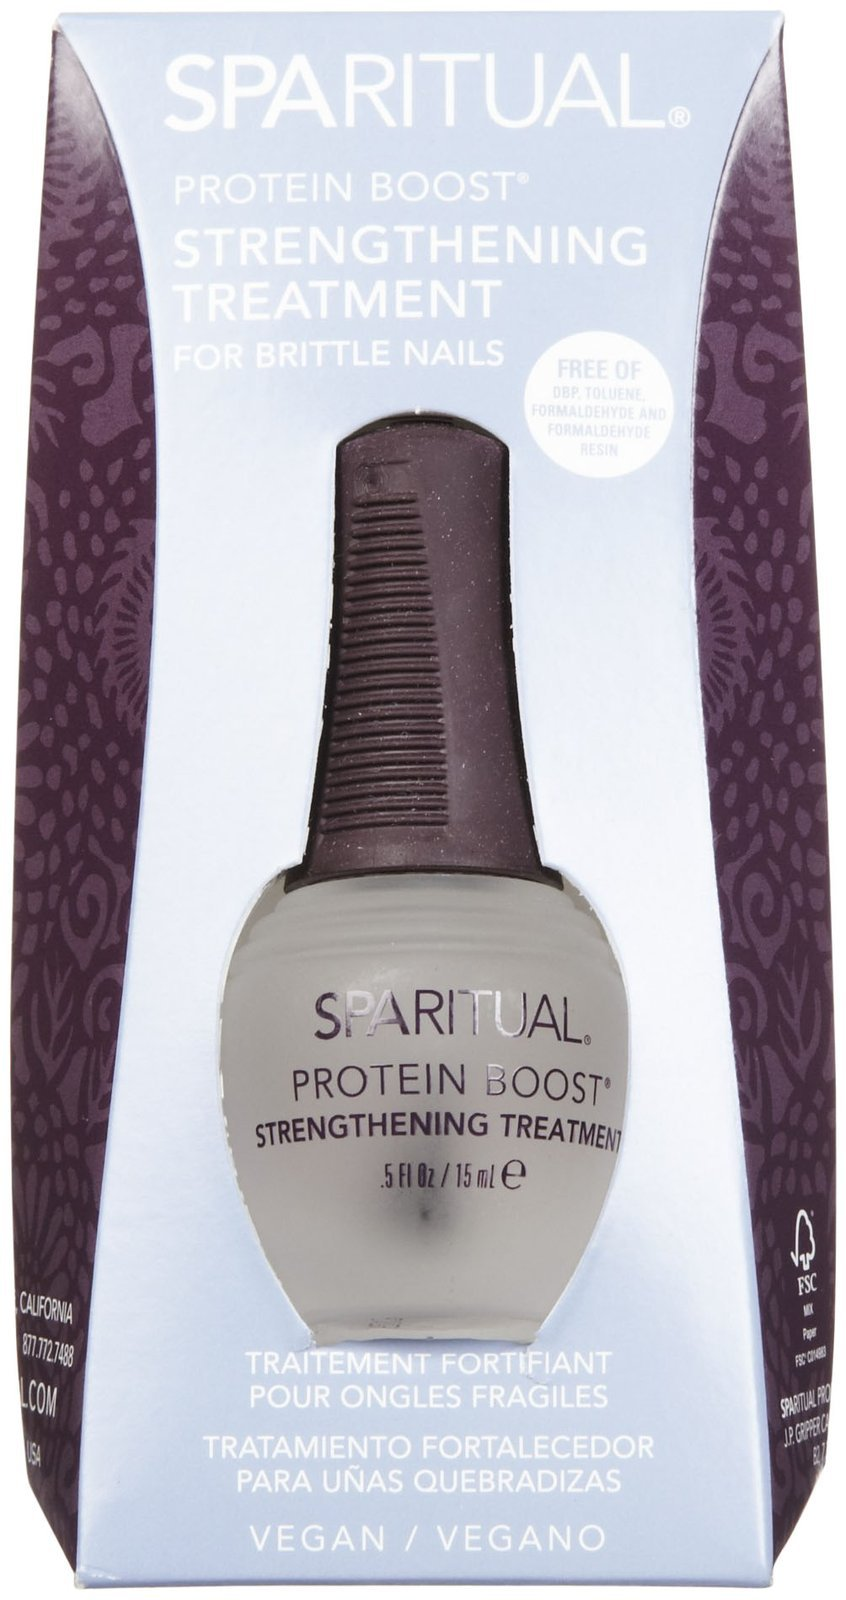 SPARITUAL Protein Boost Strengthening Treatment For Brittle Nails .5 fl. oz. by SpaRitual (Image #1)